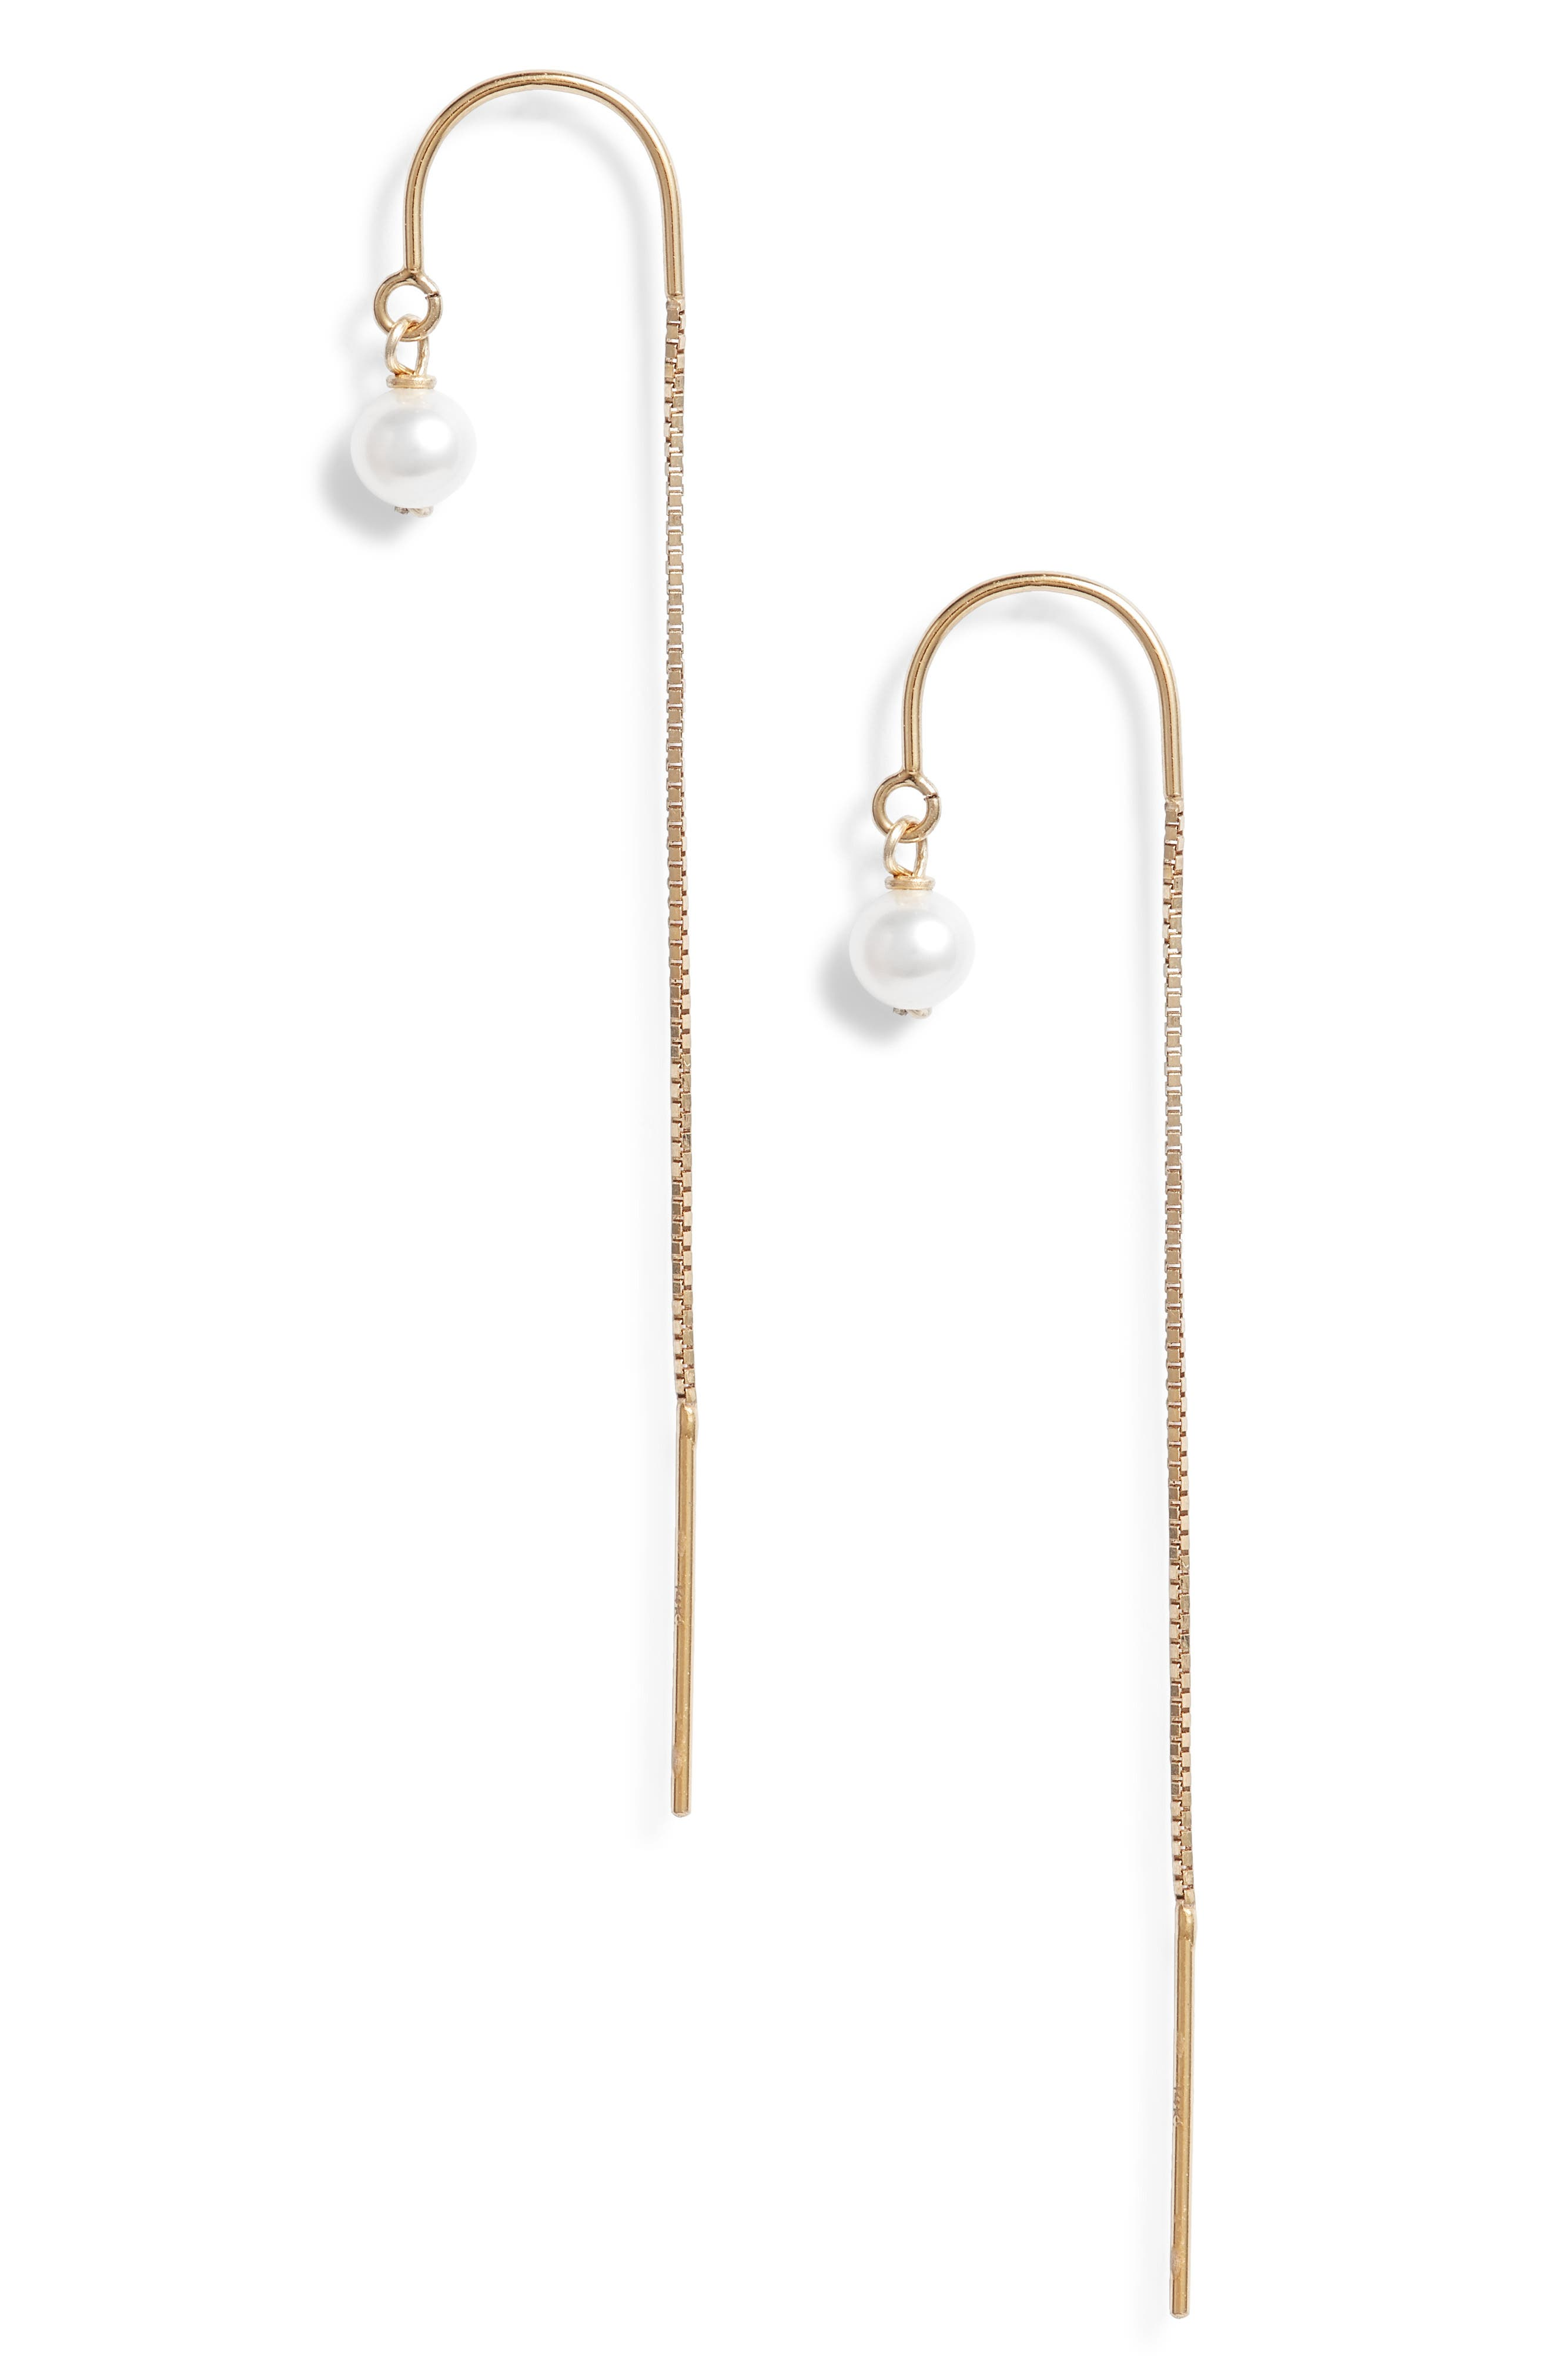 Poppy Finch Tiny Pearl Threader Earrings